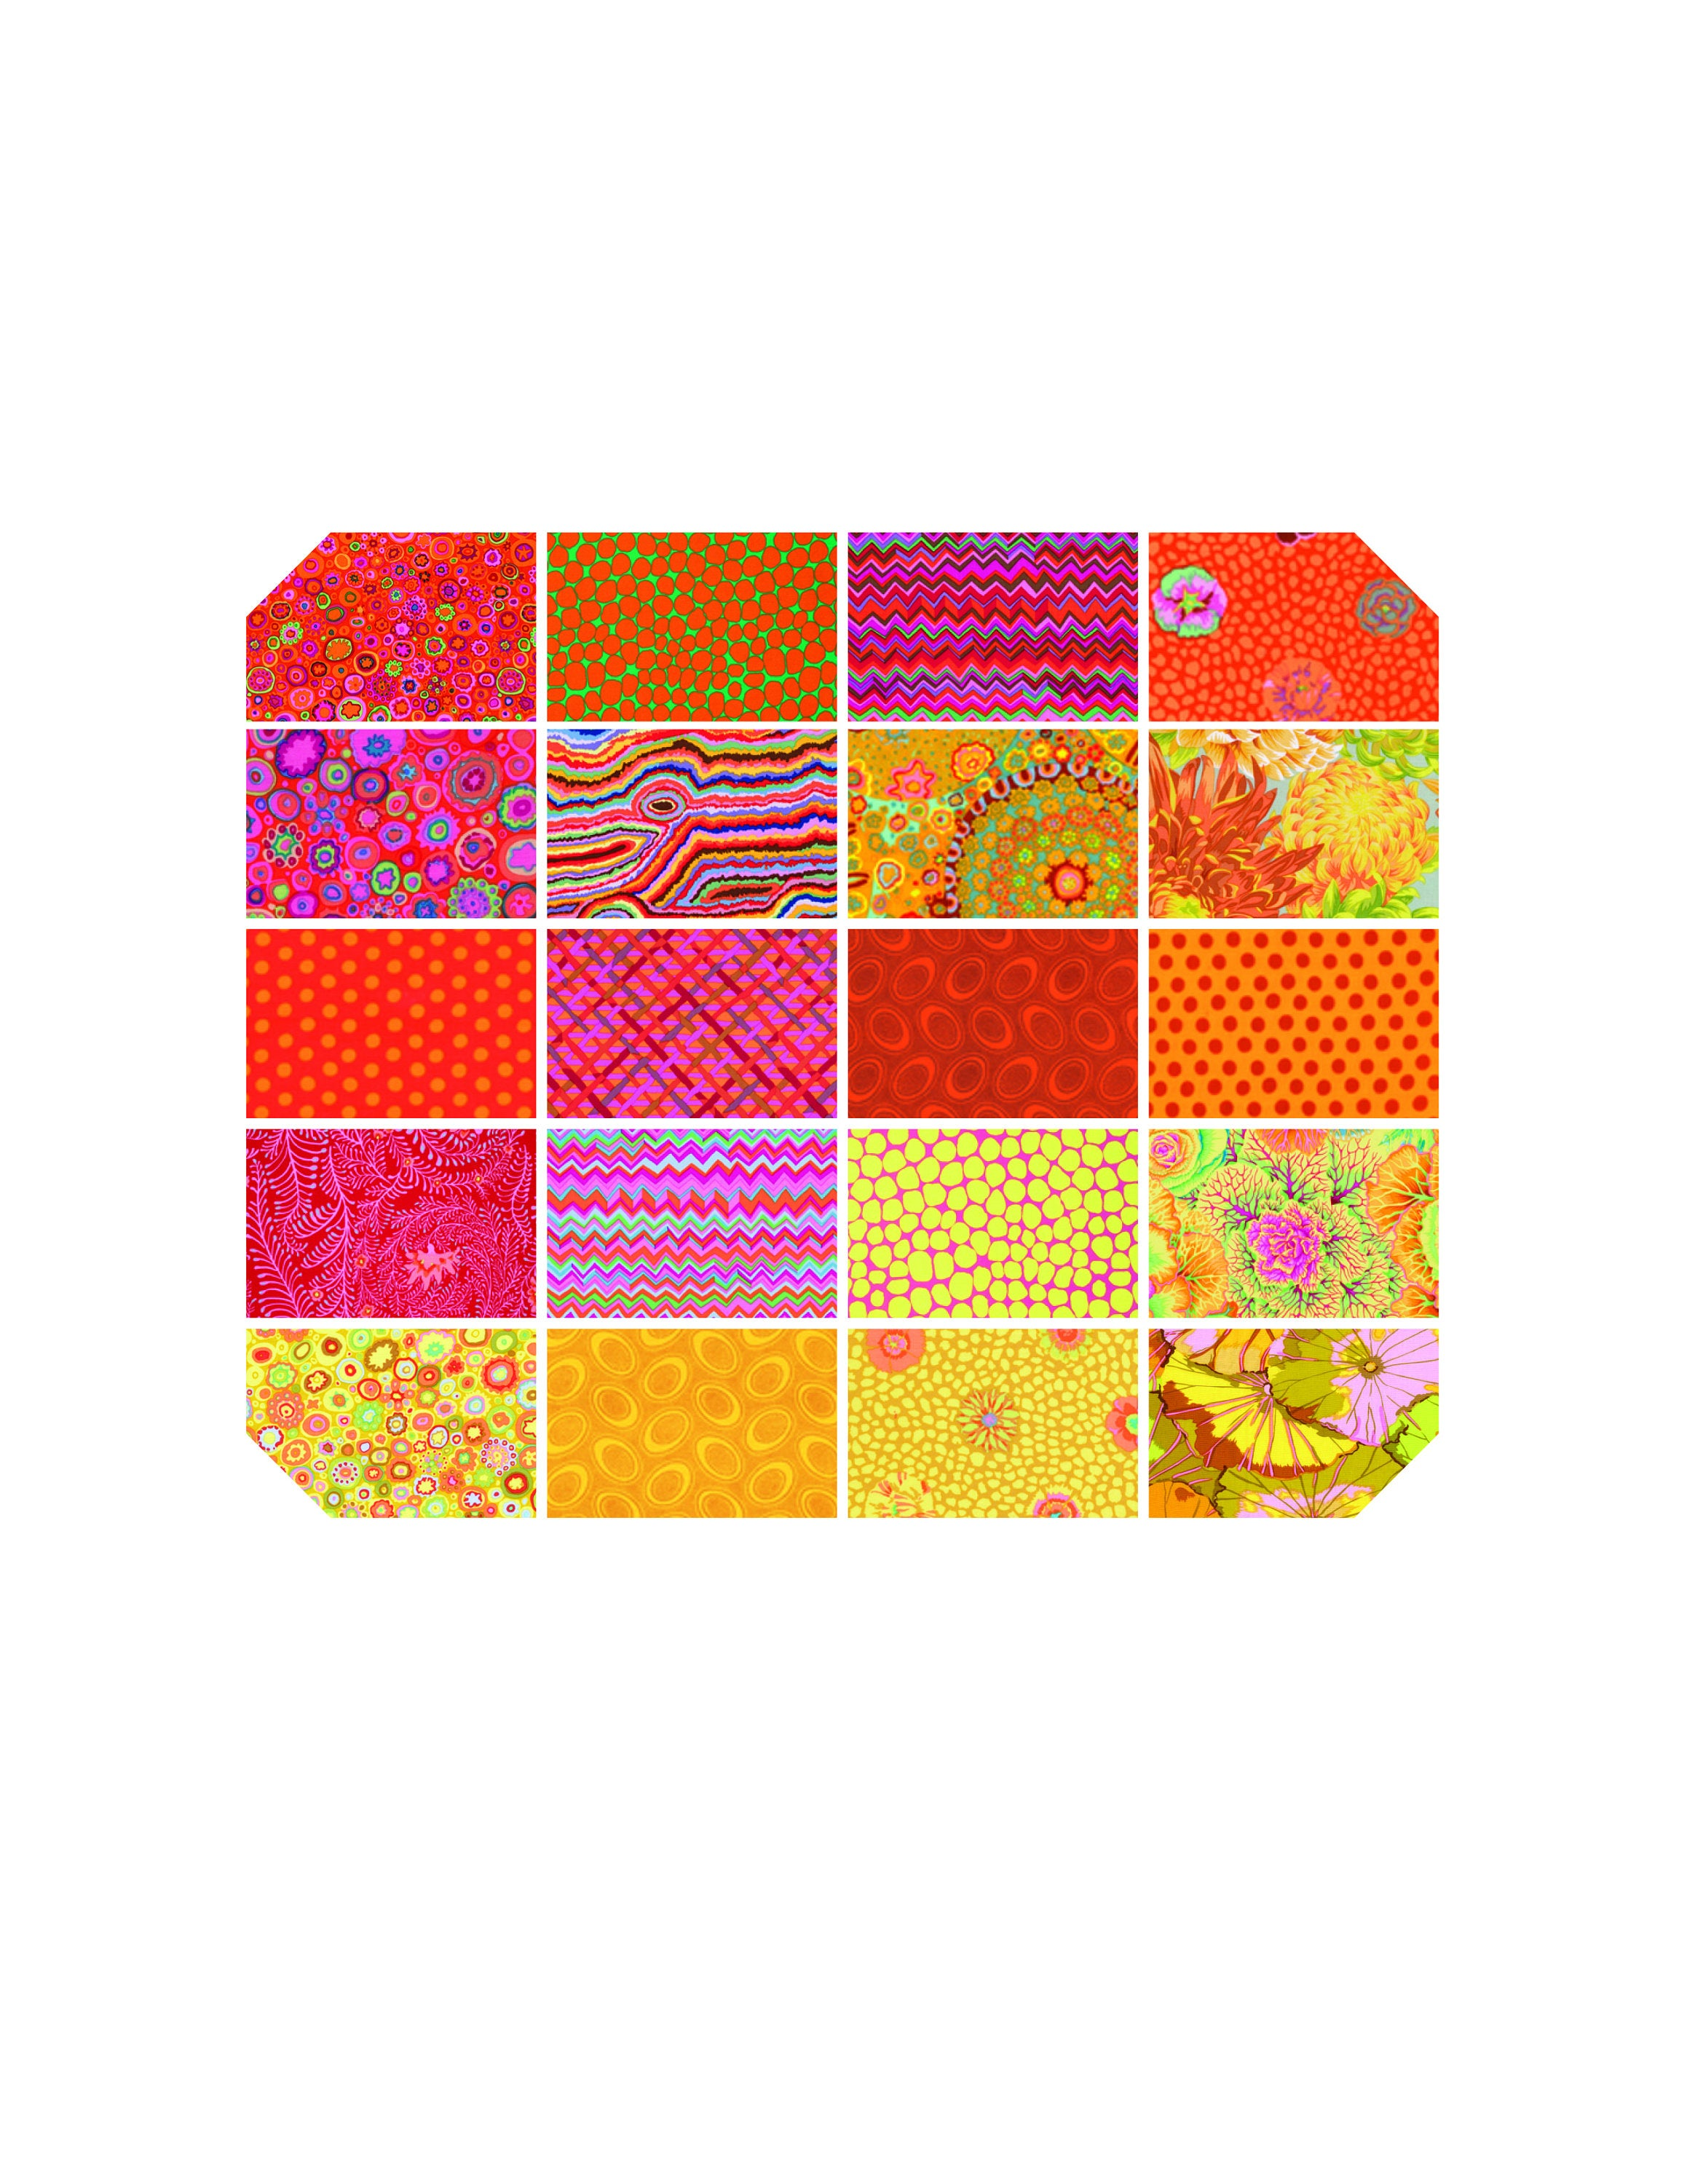 Kaffe Fassett Collective Classics - Citrus 2.5 Strip Roll - 40 Pieces - by Free Spirit Fabrics